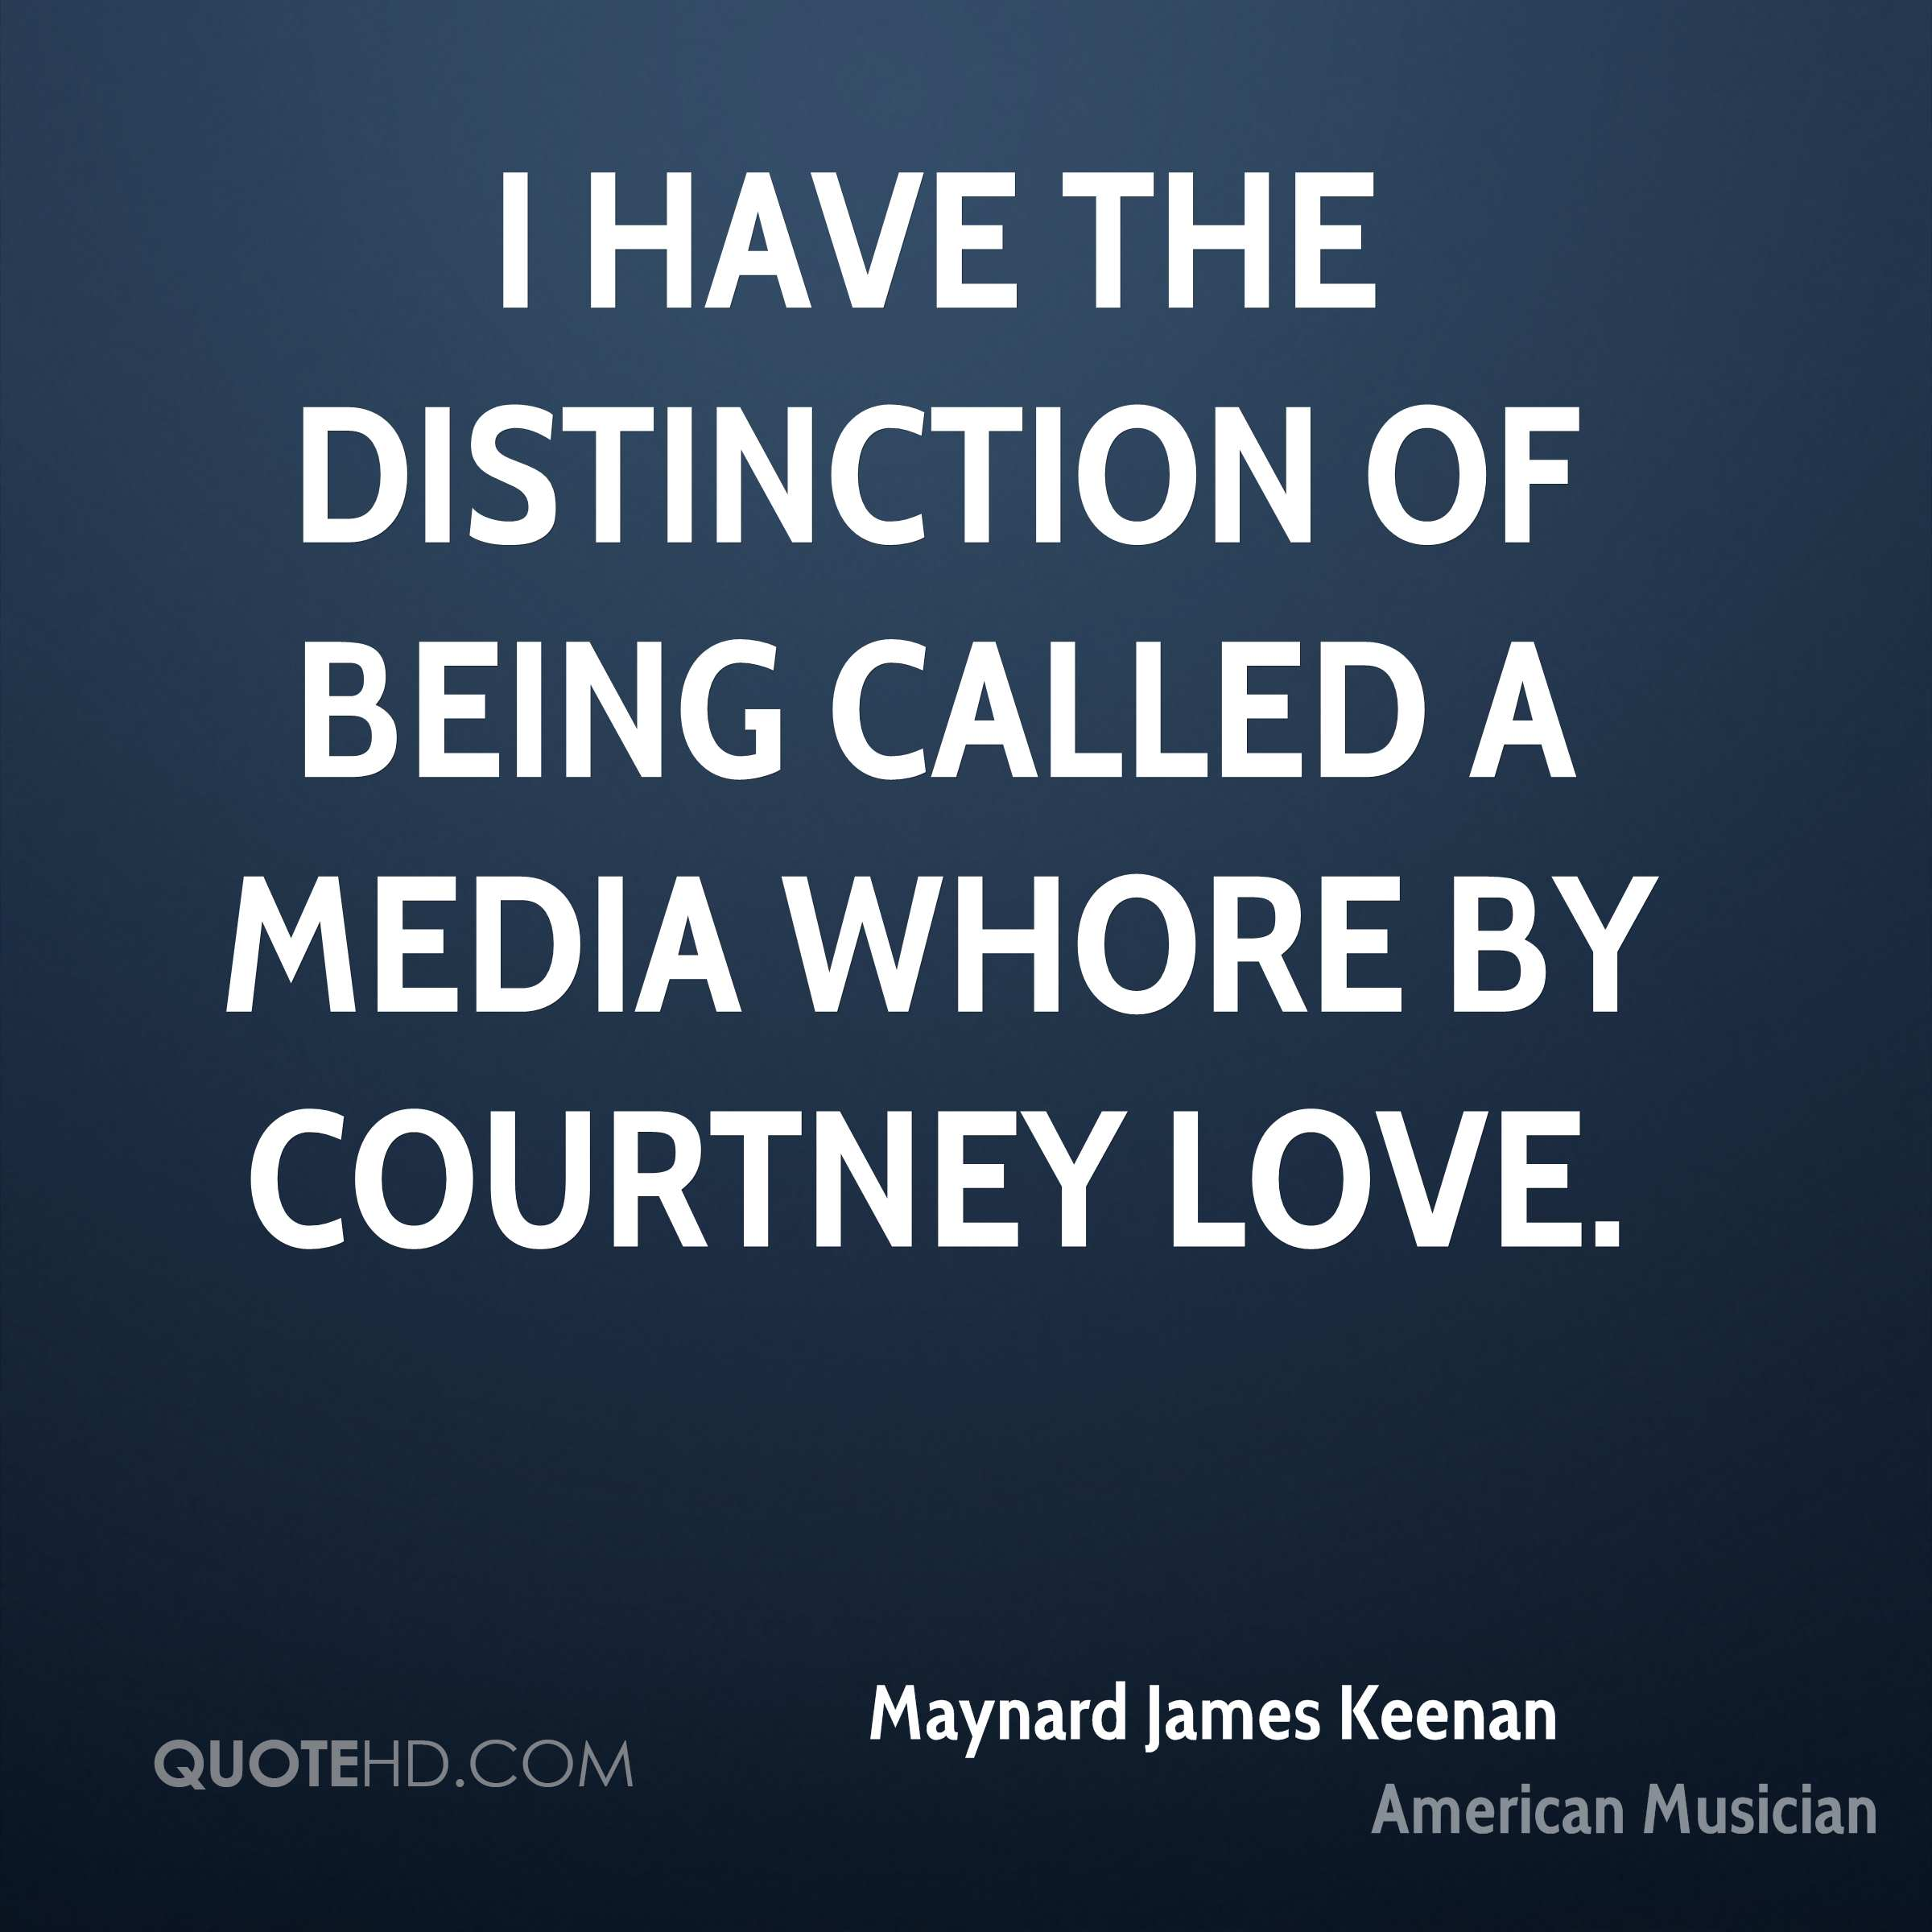 I have the distinction of being called a media whore by Courtney Love.